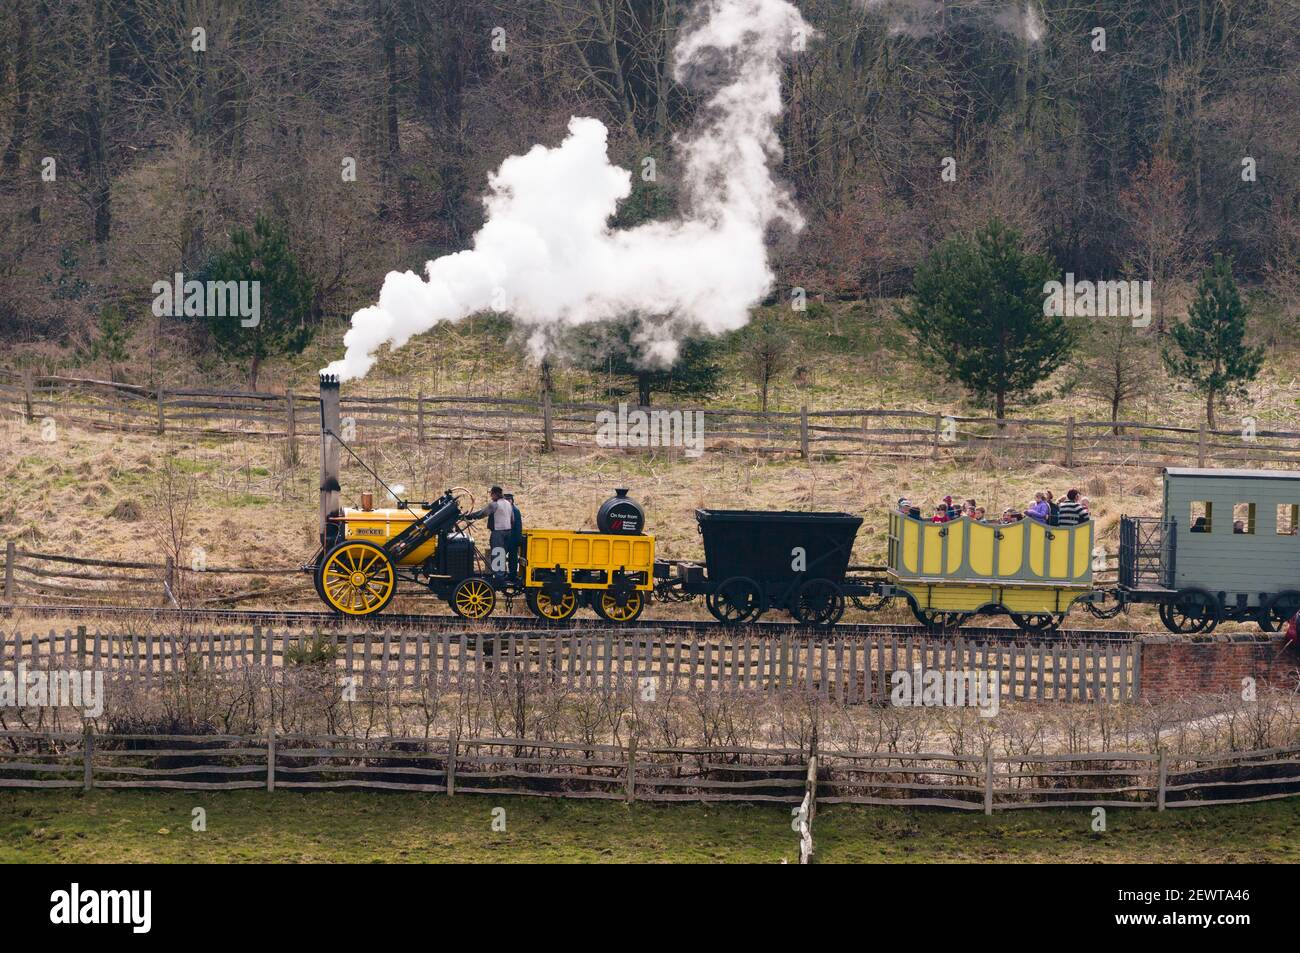 replica-of-stephensons-rocket-steam-locomotive-pulling-train-at-beamish-museum-north-east-england-uk-2EWTA46.jpg